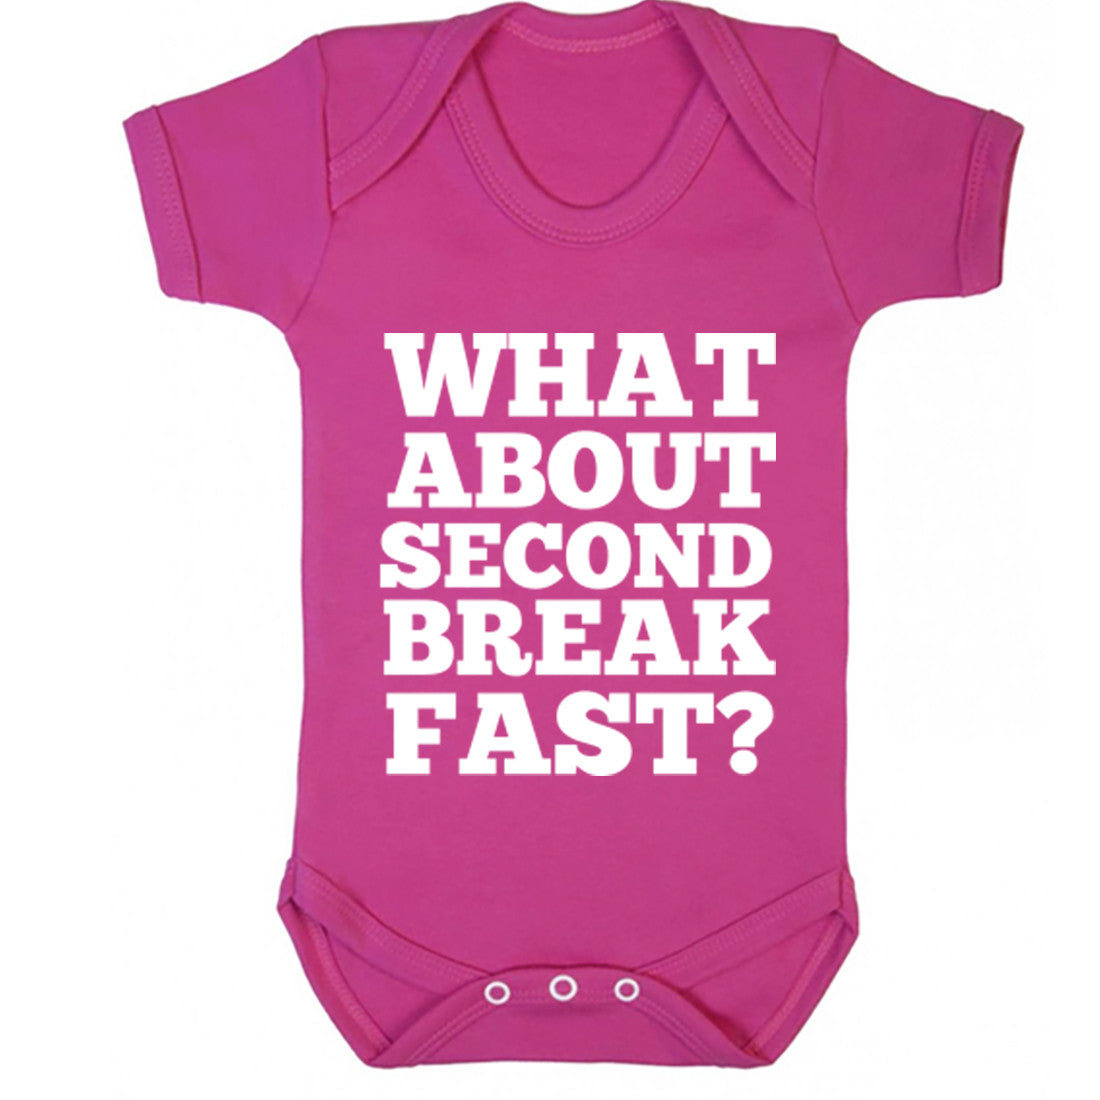 What About Second Breakfast? Baby Vest K0693 - Illustrated Identity Ltd.